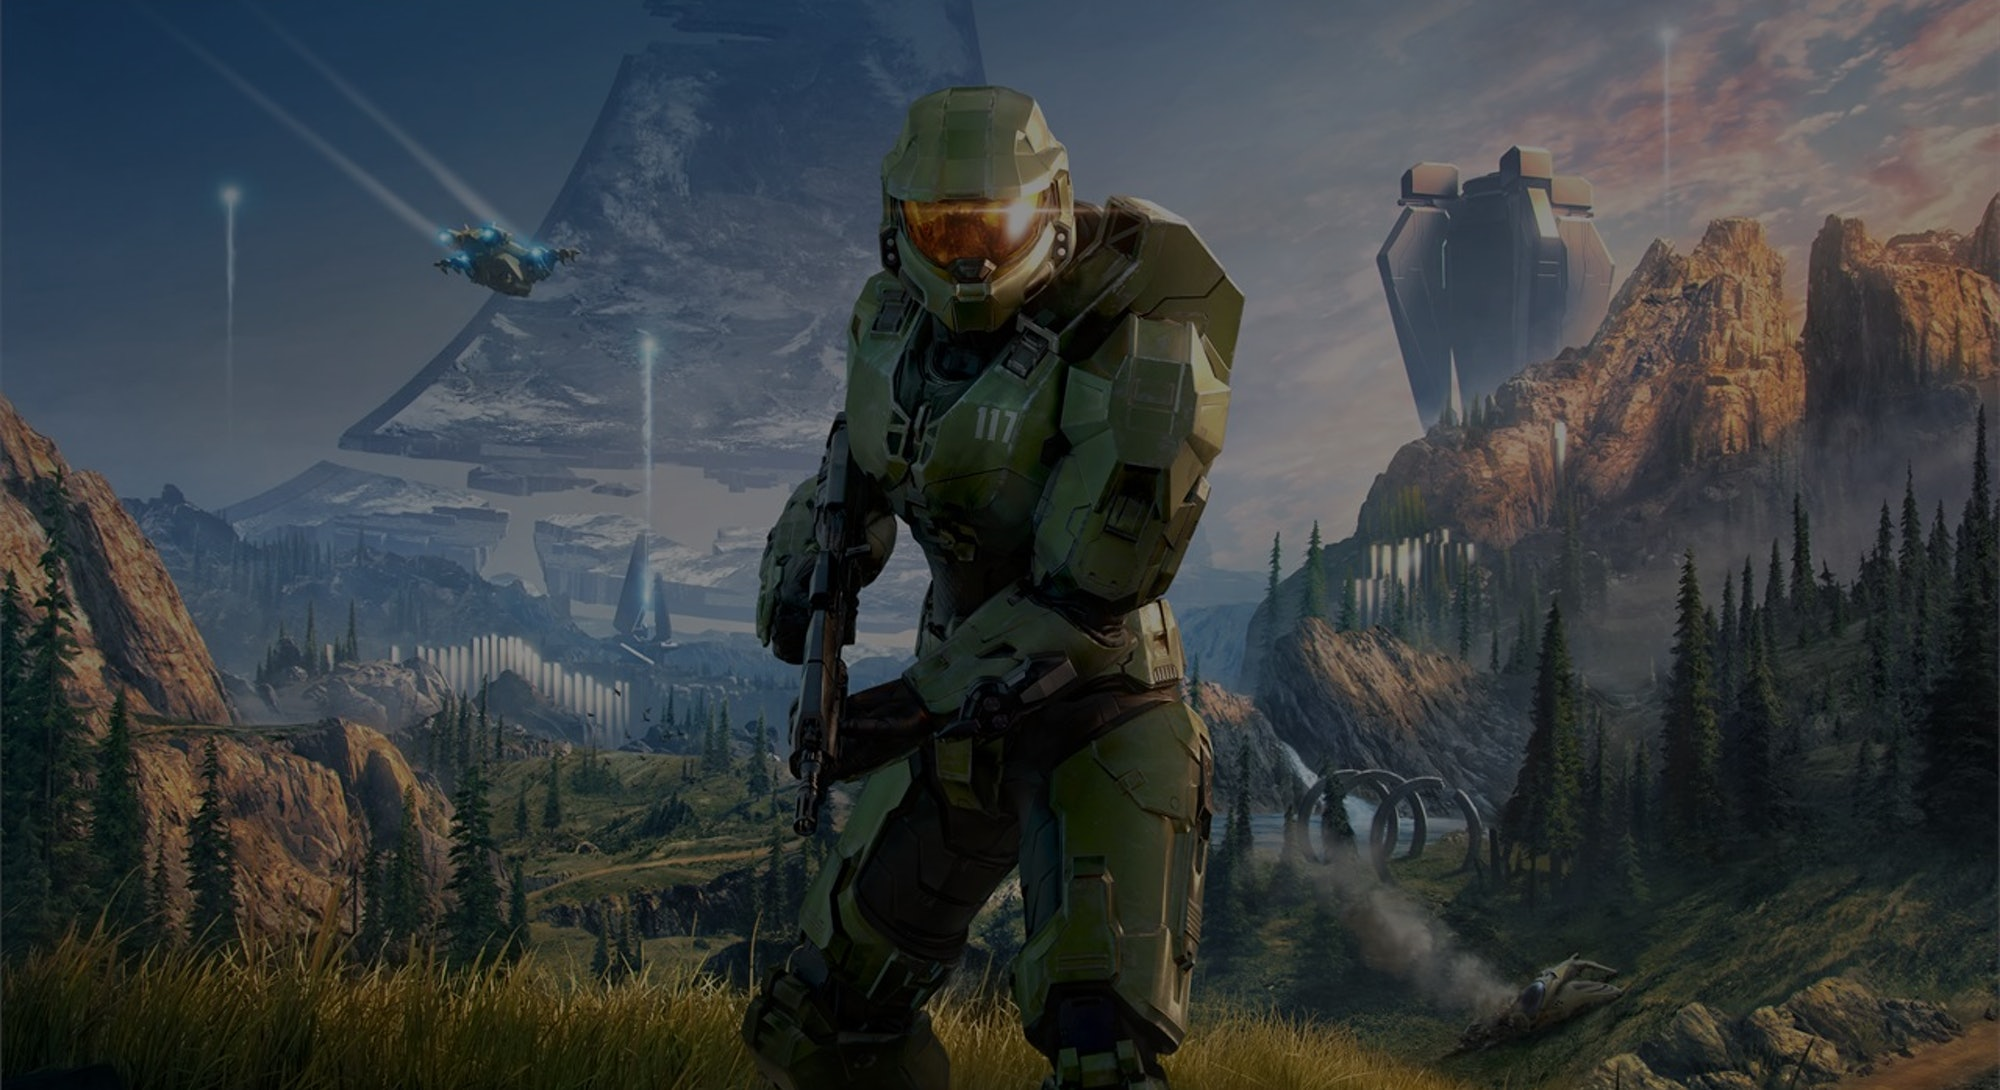 A teaser for Halo Infinite. Games. Gaming. Video games.